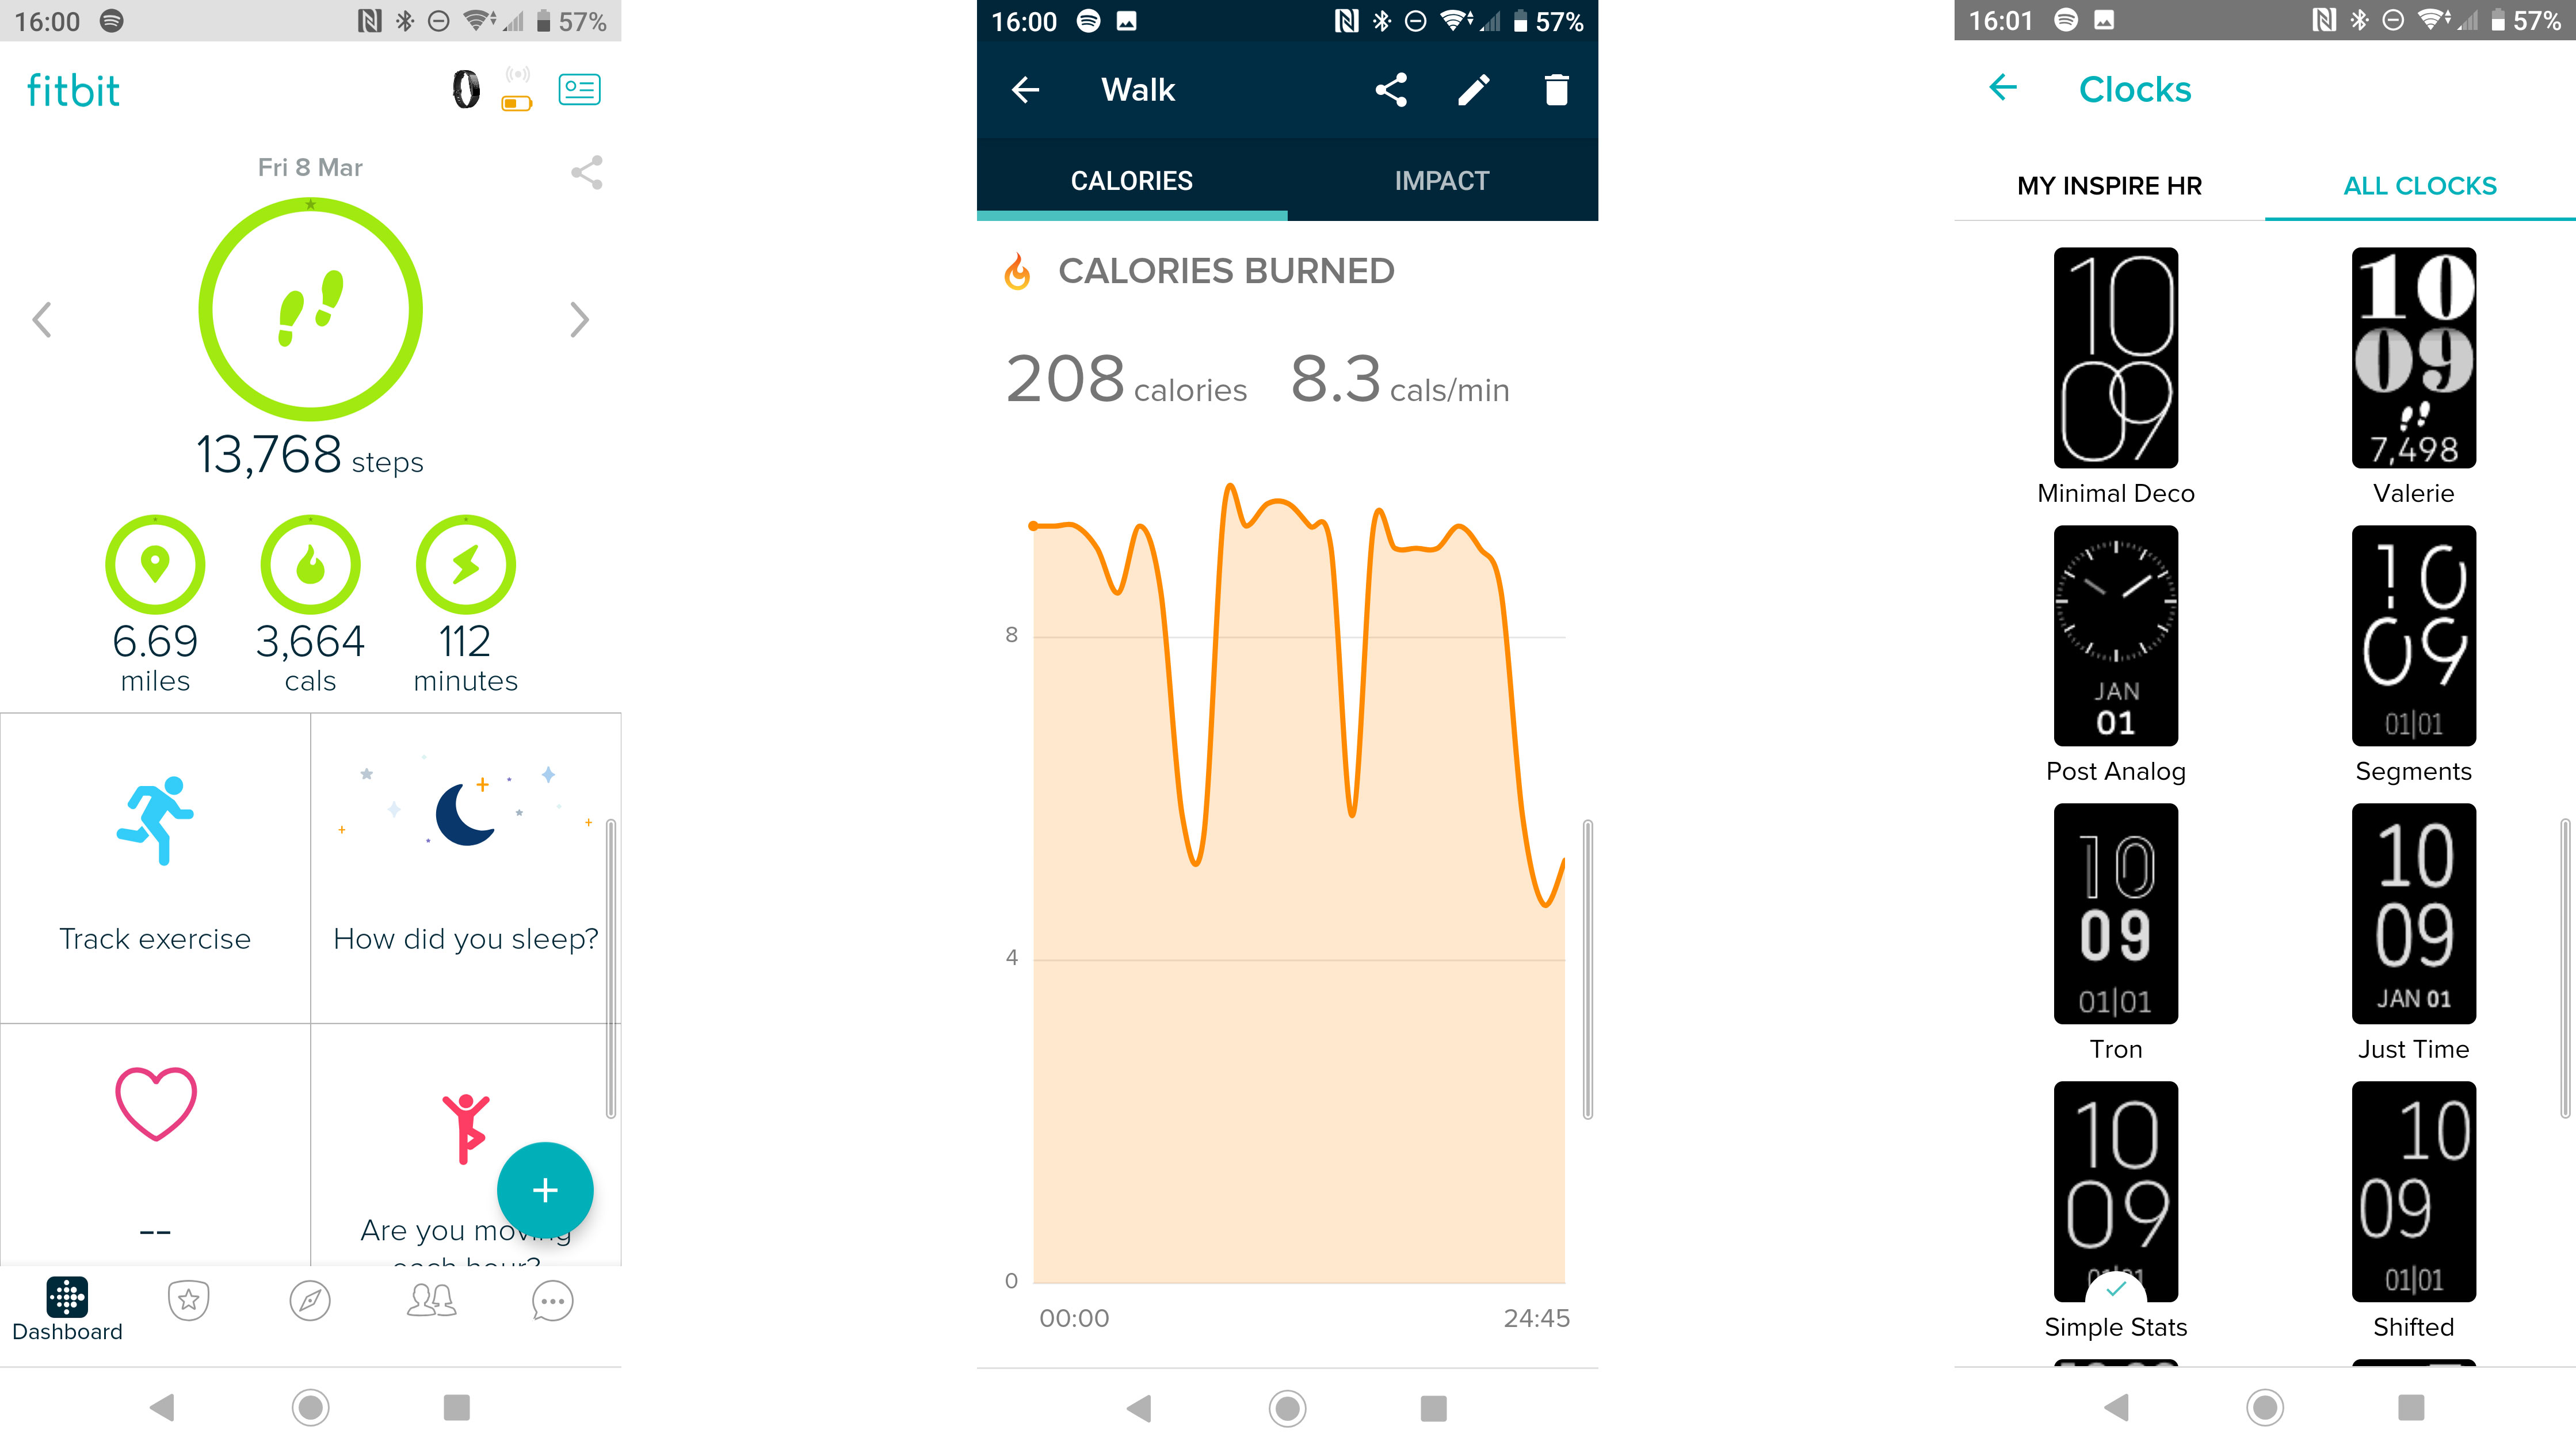 An example of some of the screens you'll find within the Fitbit Inspire HR app.